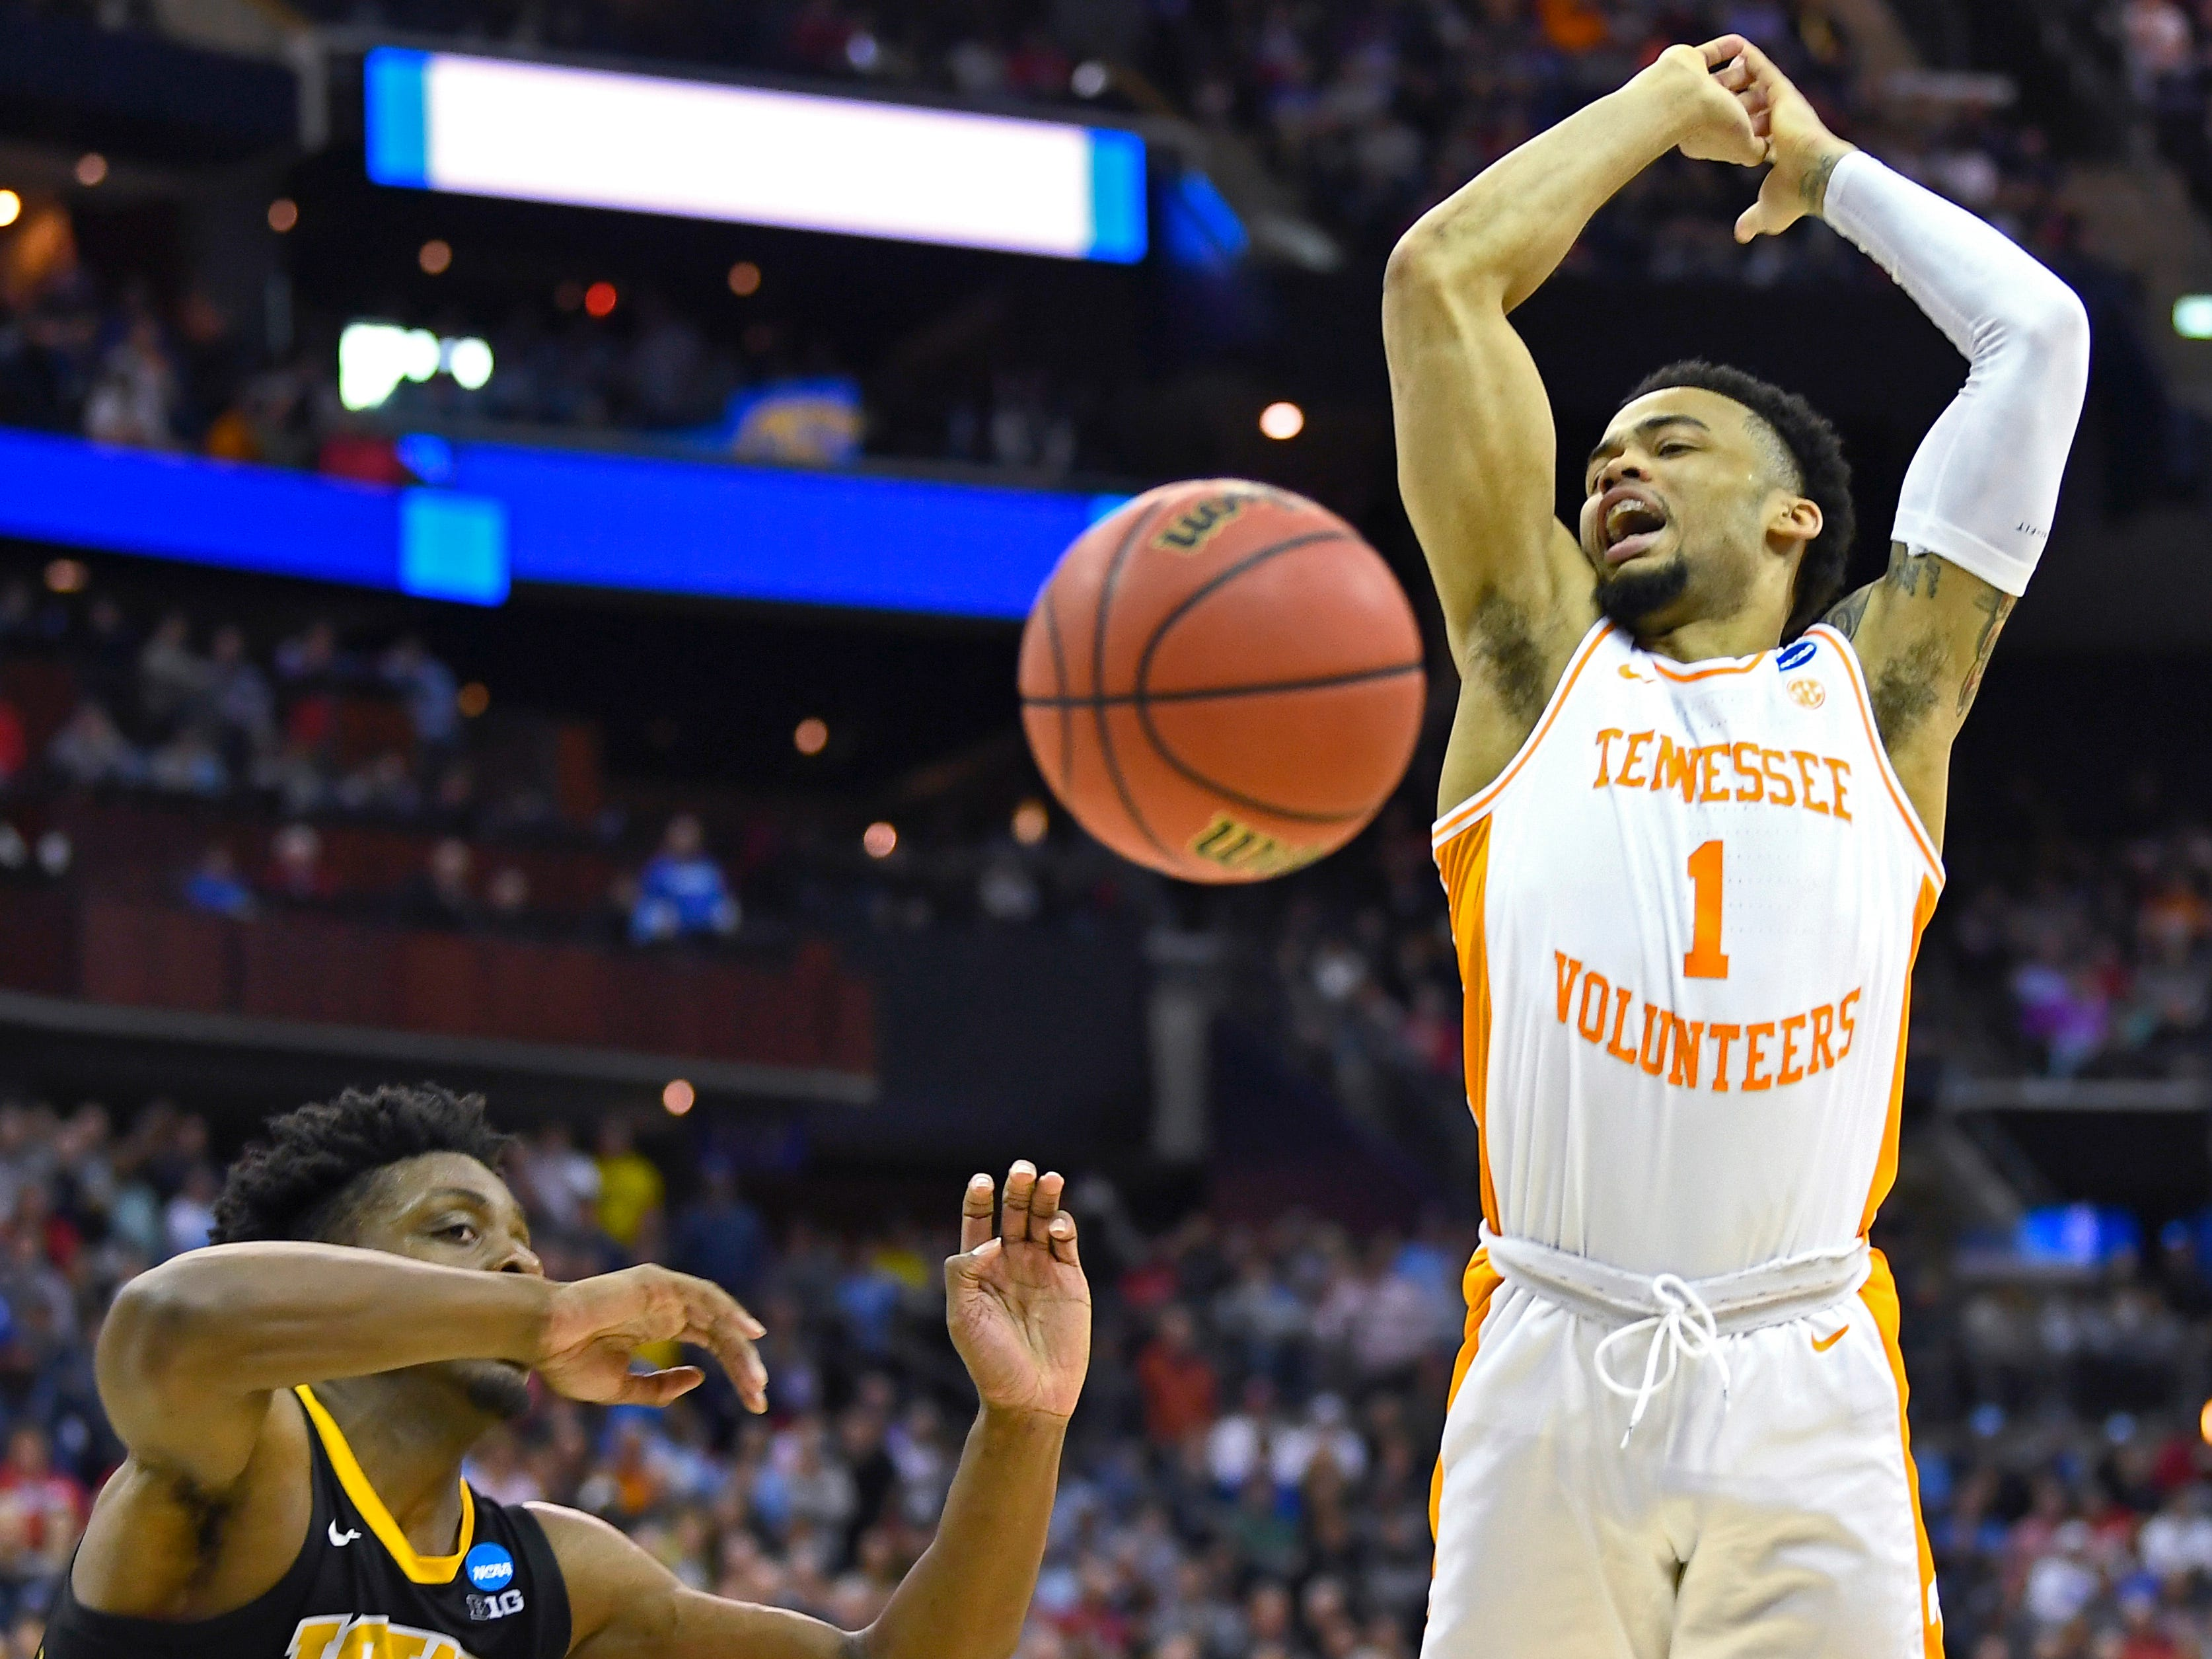 Tennessee guard Lamonte Turner (1) is fouled by Iowa forward Tyler Cook (25) during UT's win overtime win in the second round of the NCAA Tournament at Nationwide Arena in Columbus, Ohio, Sunday, March 24, 2019.